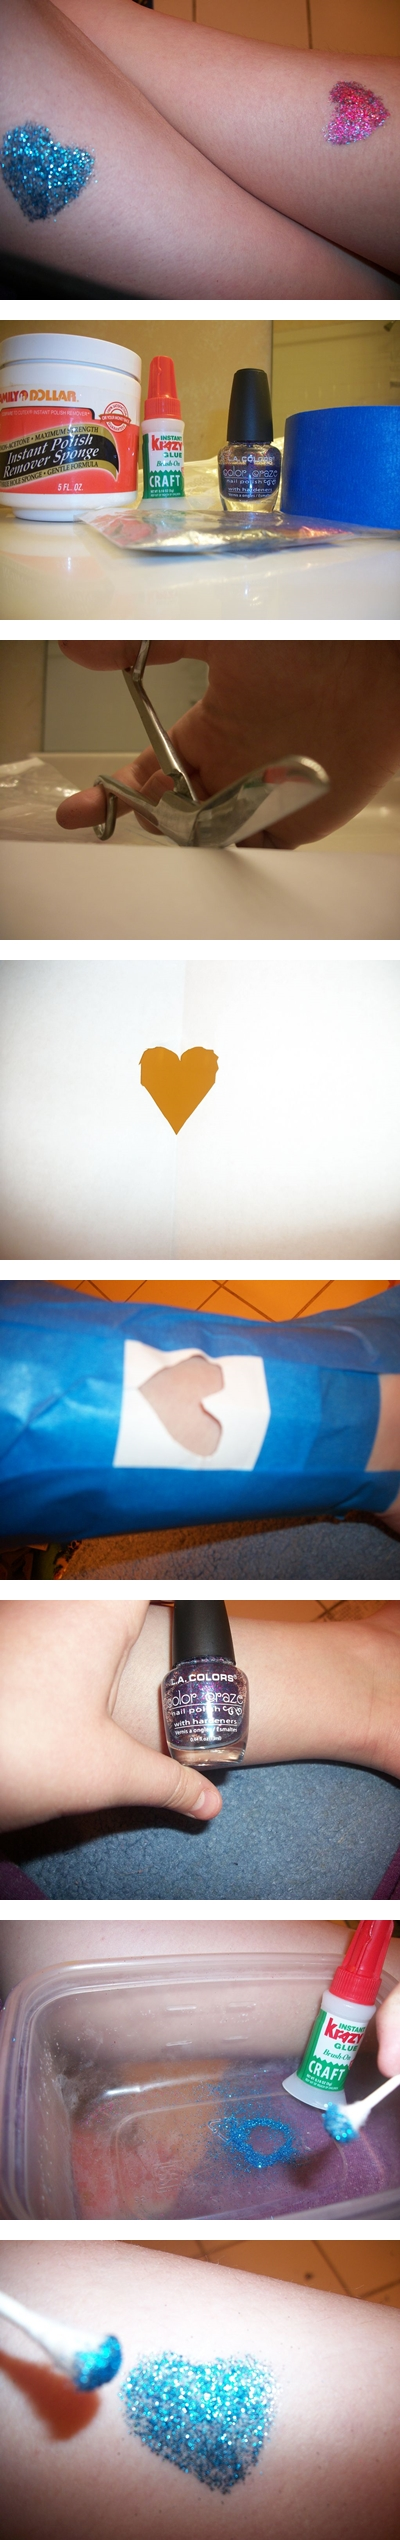 How to make heart shape glitter tattoo step by step DIY instructions